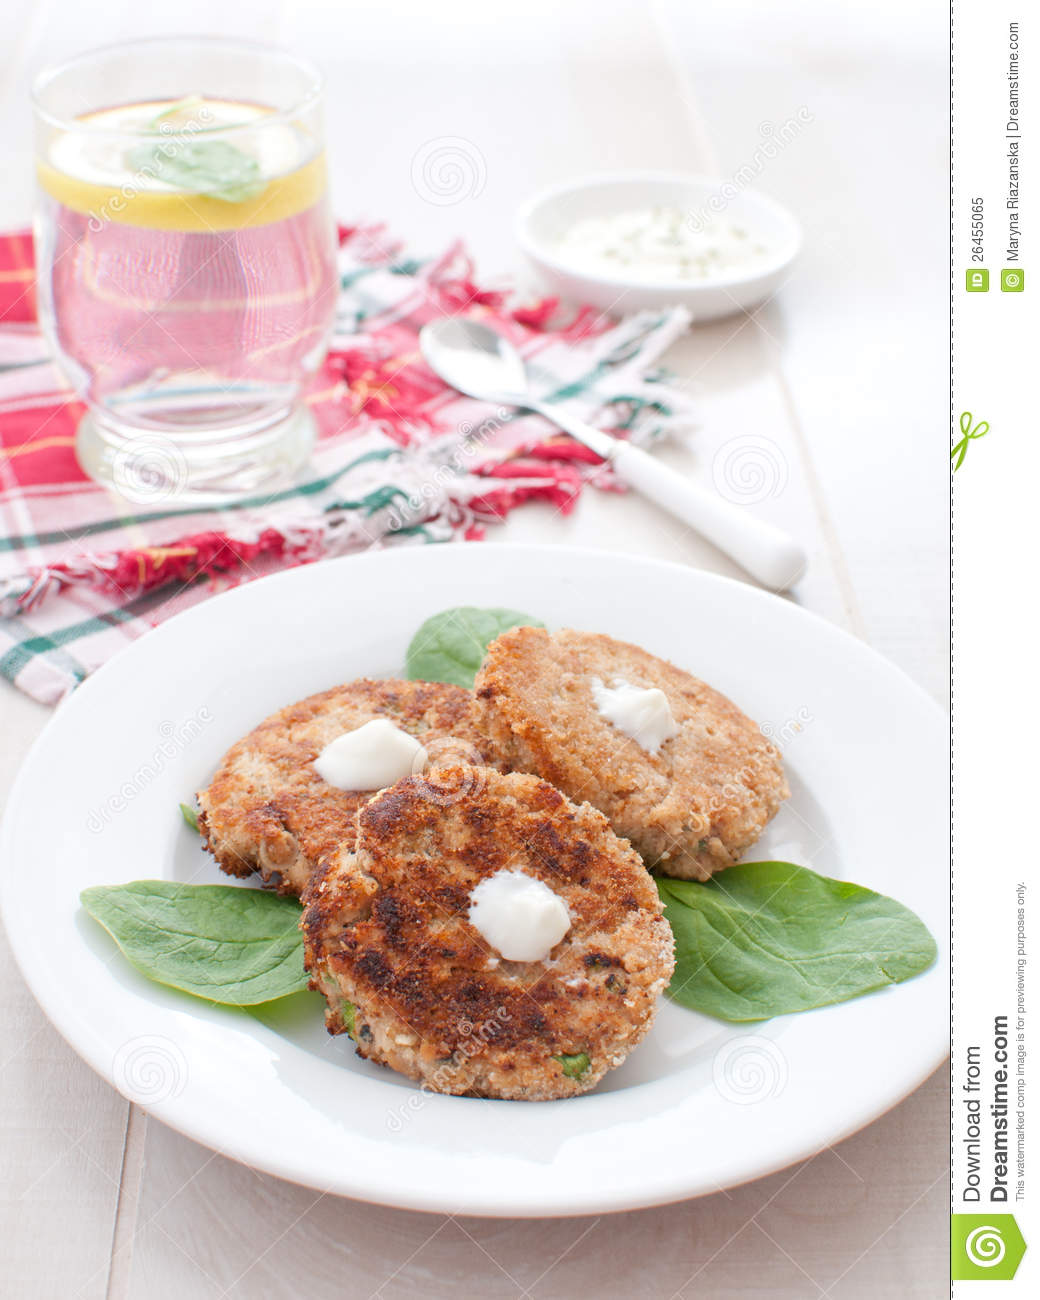 Fish or crab cakes with greens and sauce royalty free for Crab topping for fish